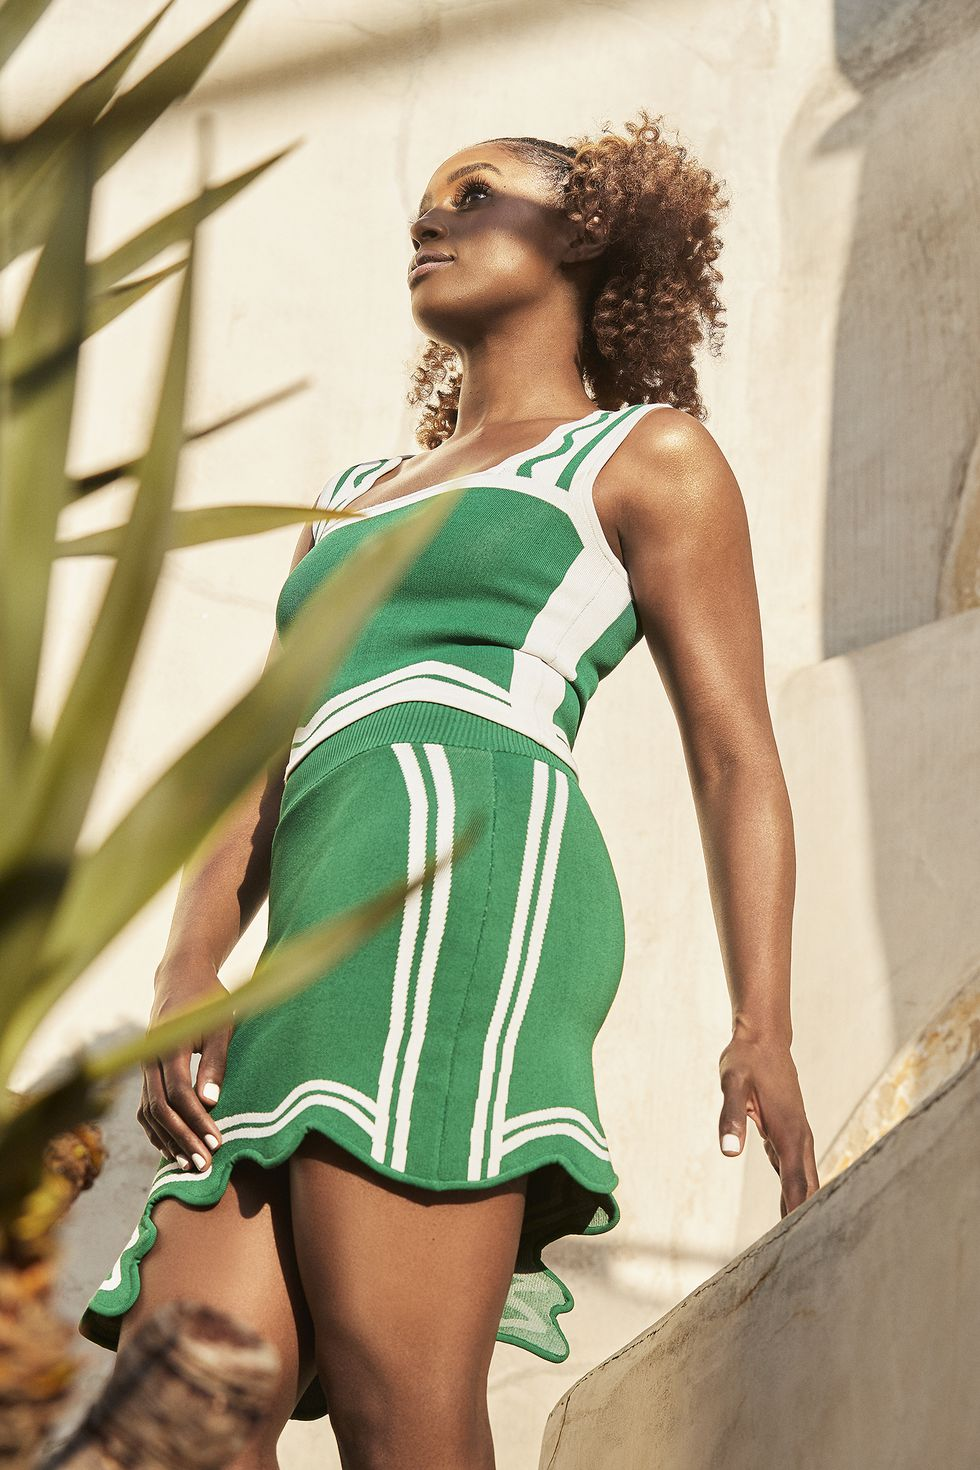 WOMEN'S HEALTH MAGAZINE THE NATURAL ISSUE 2019 ISSA RAE GREEN AND WHITE.jpg